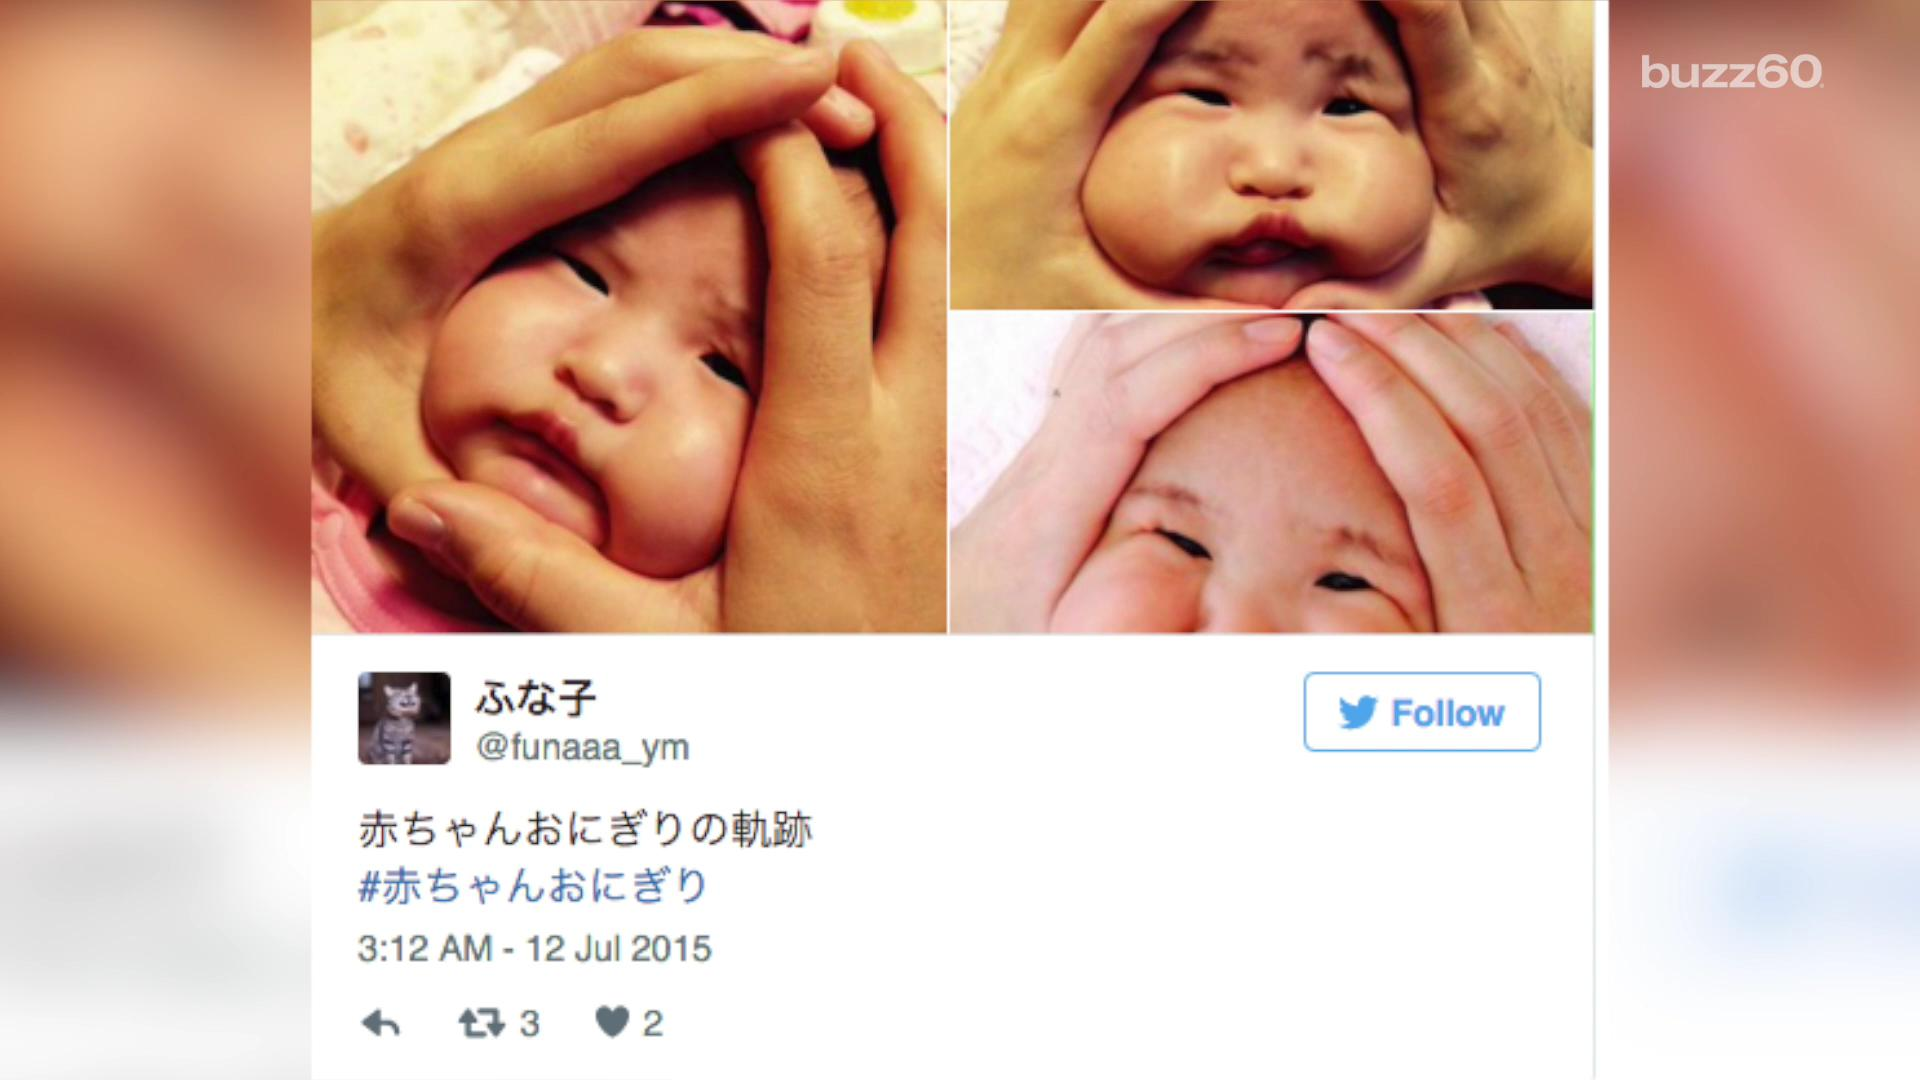 Squishing baby faces trend leads to weirdest hashtag ever